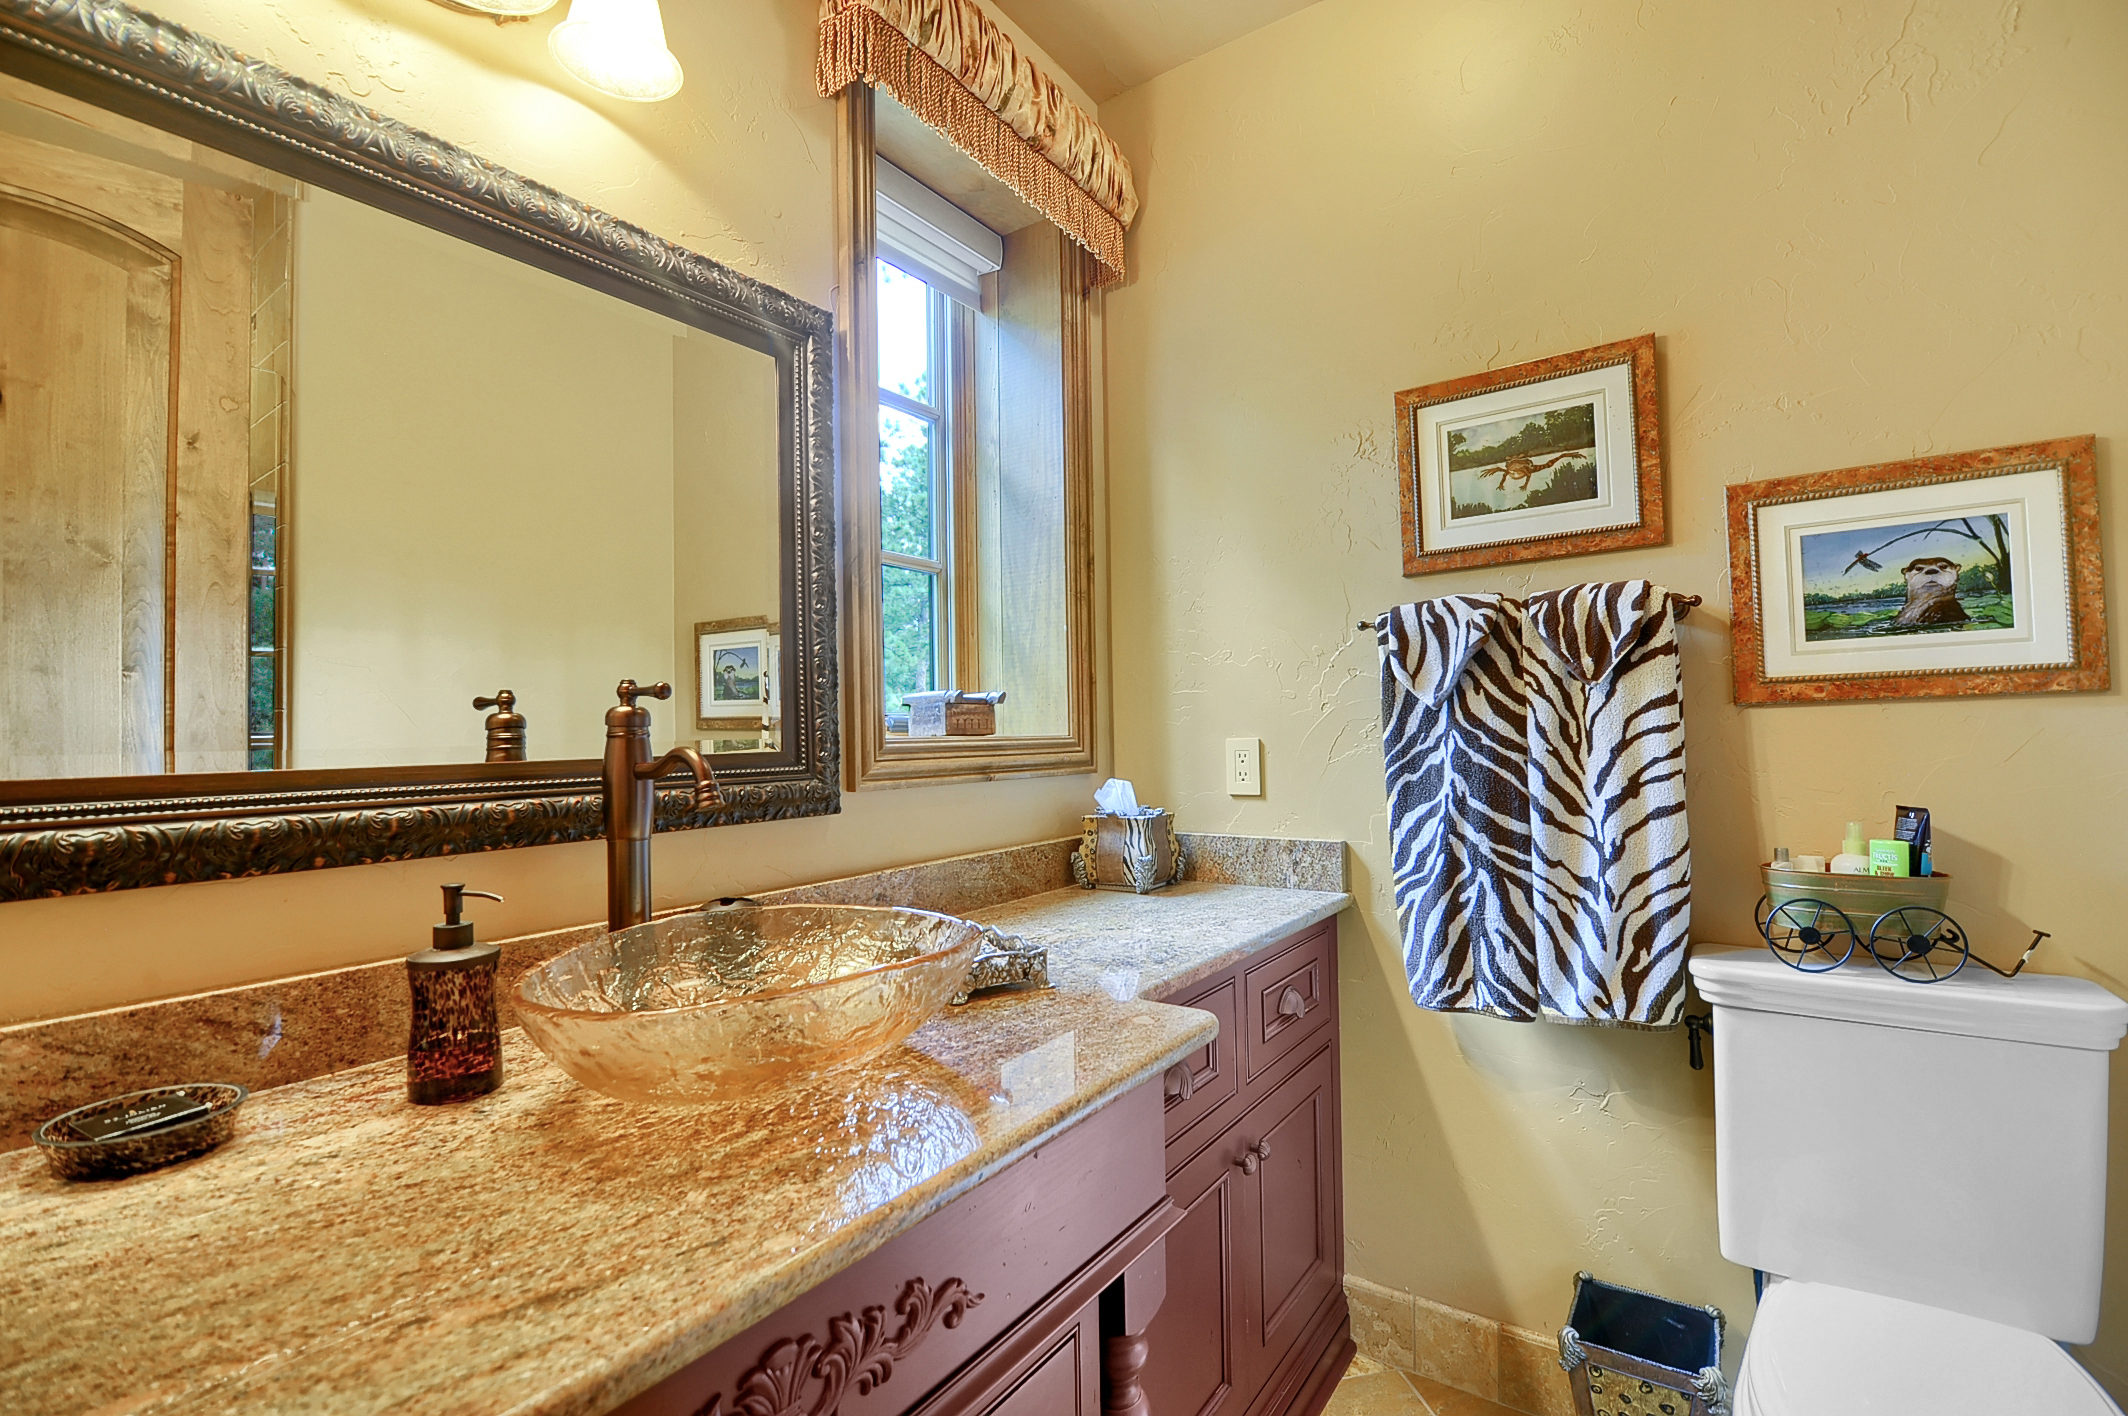 25 - Guest Bathroom.jpg